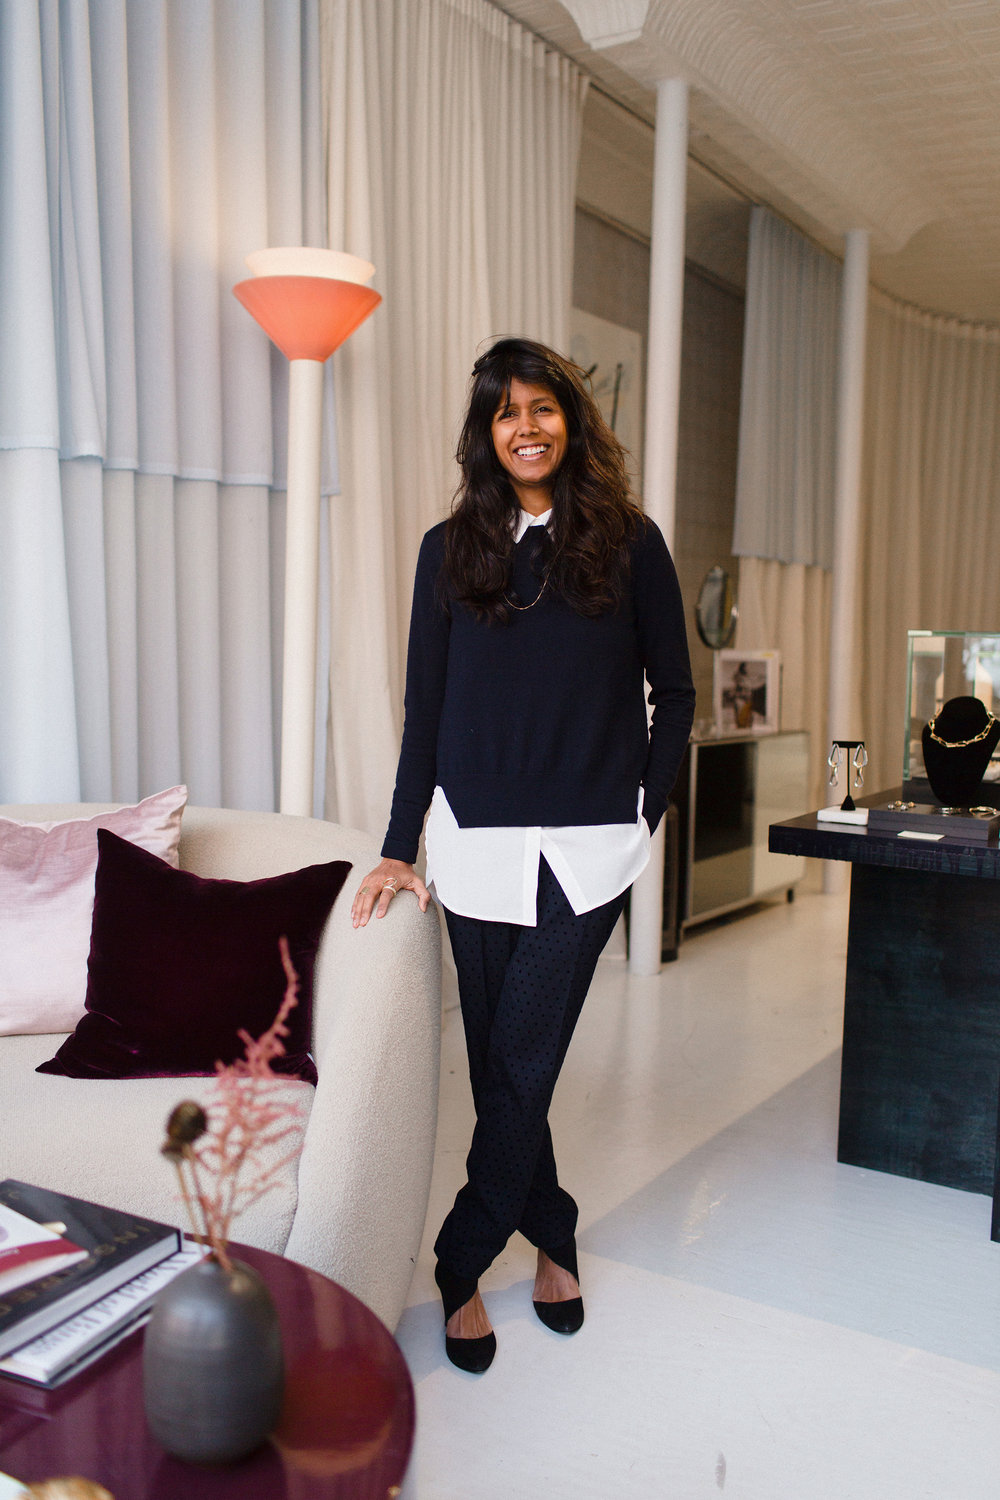 Reshma Patel, owner of Quiet Storms